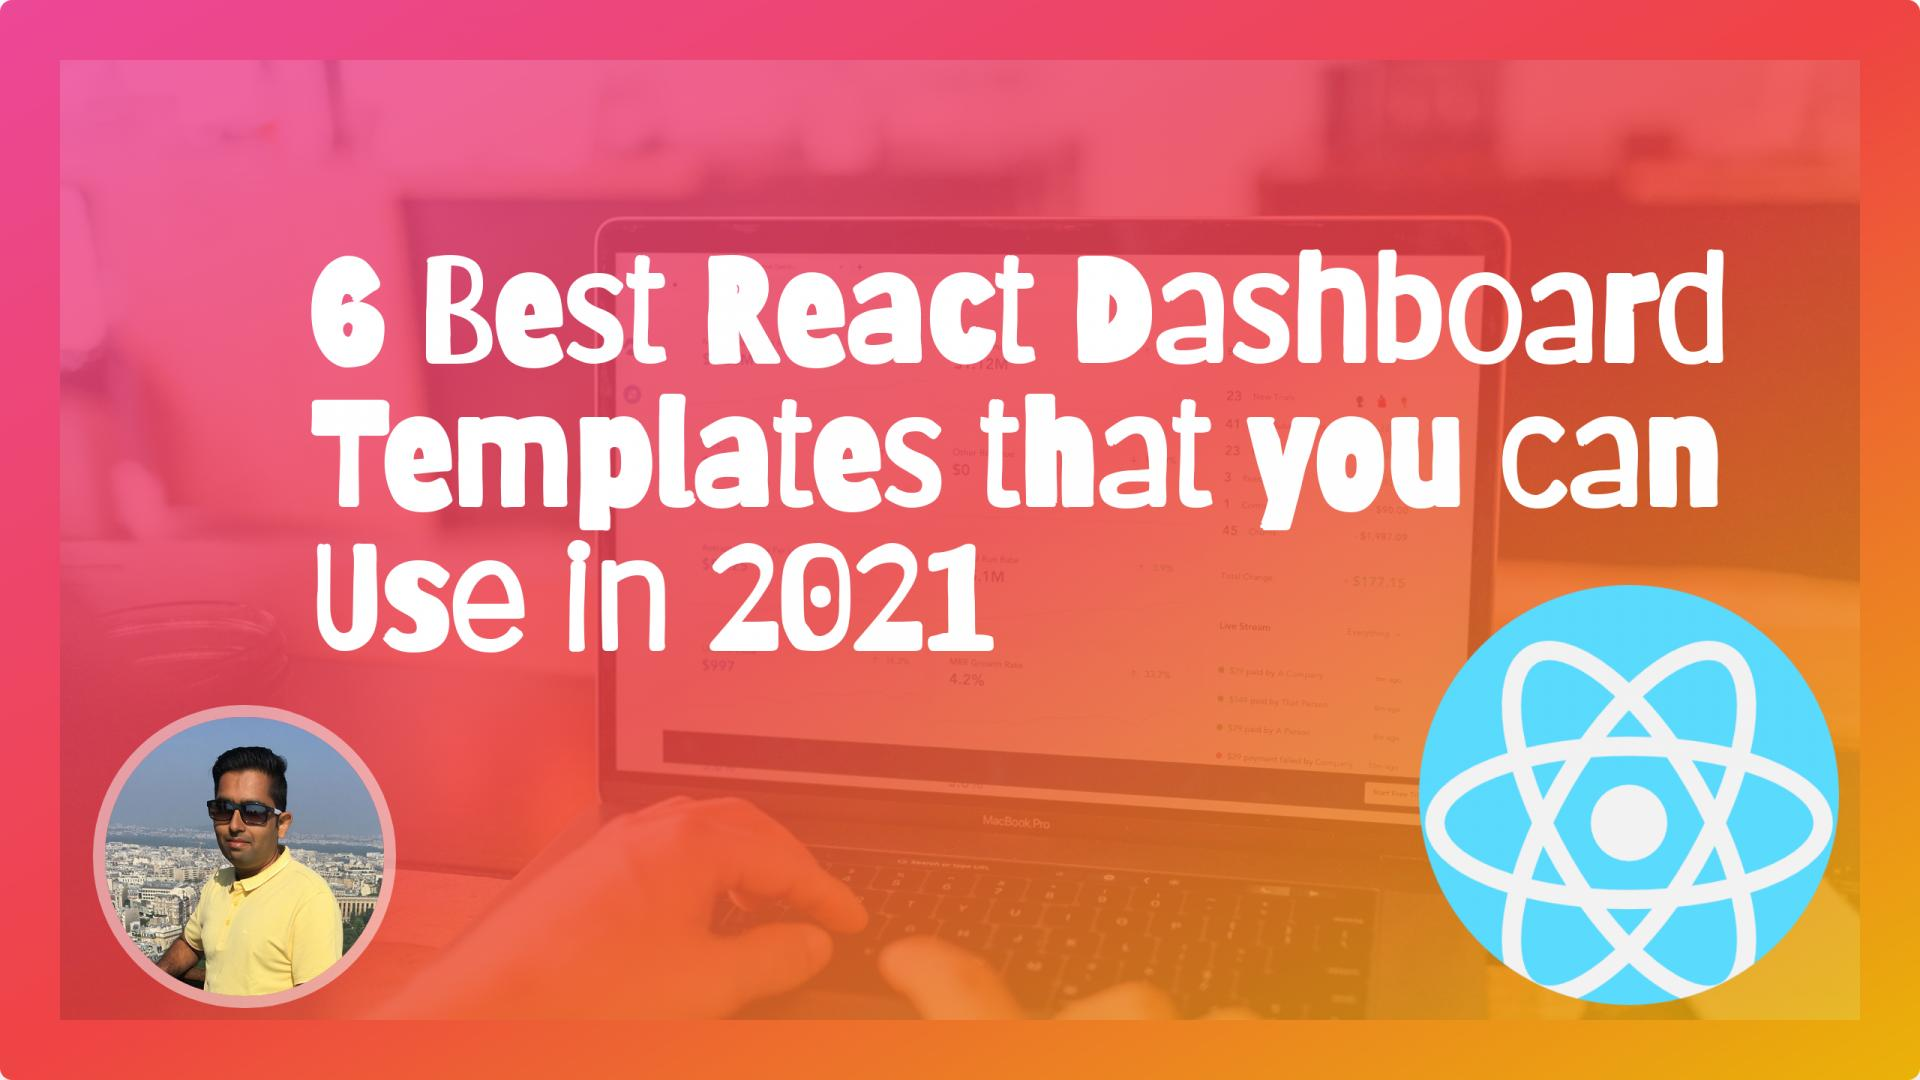 6 Best React Dashboard Templates that you can Use in 2021